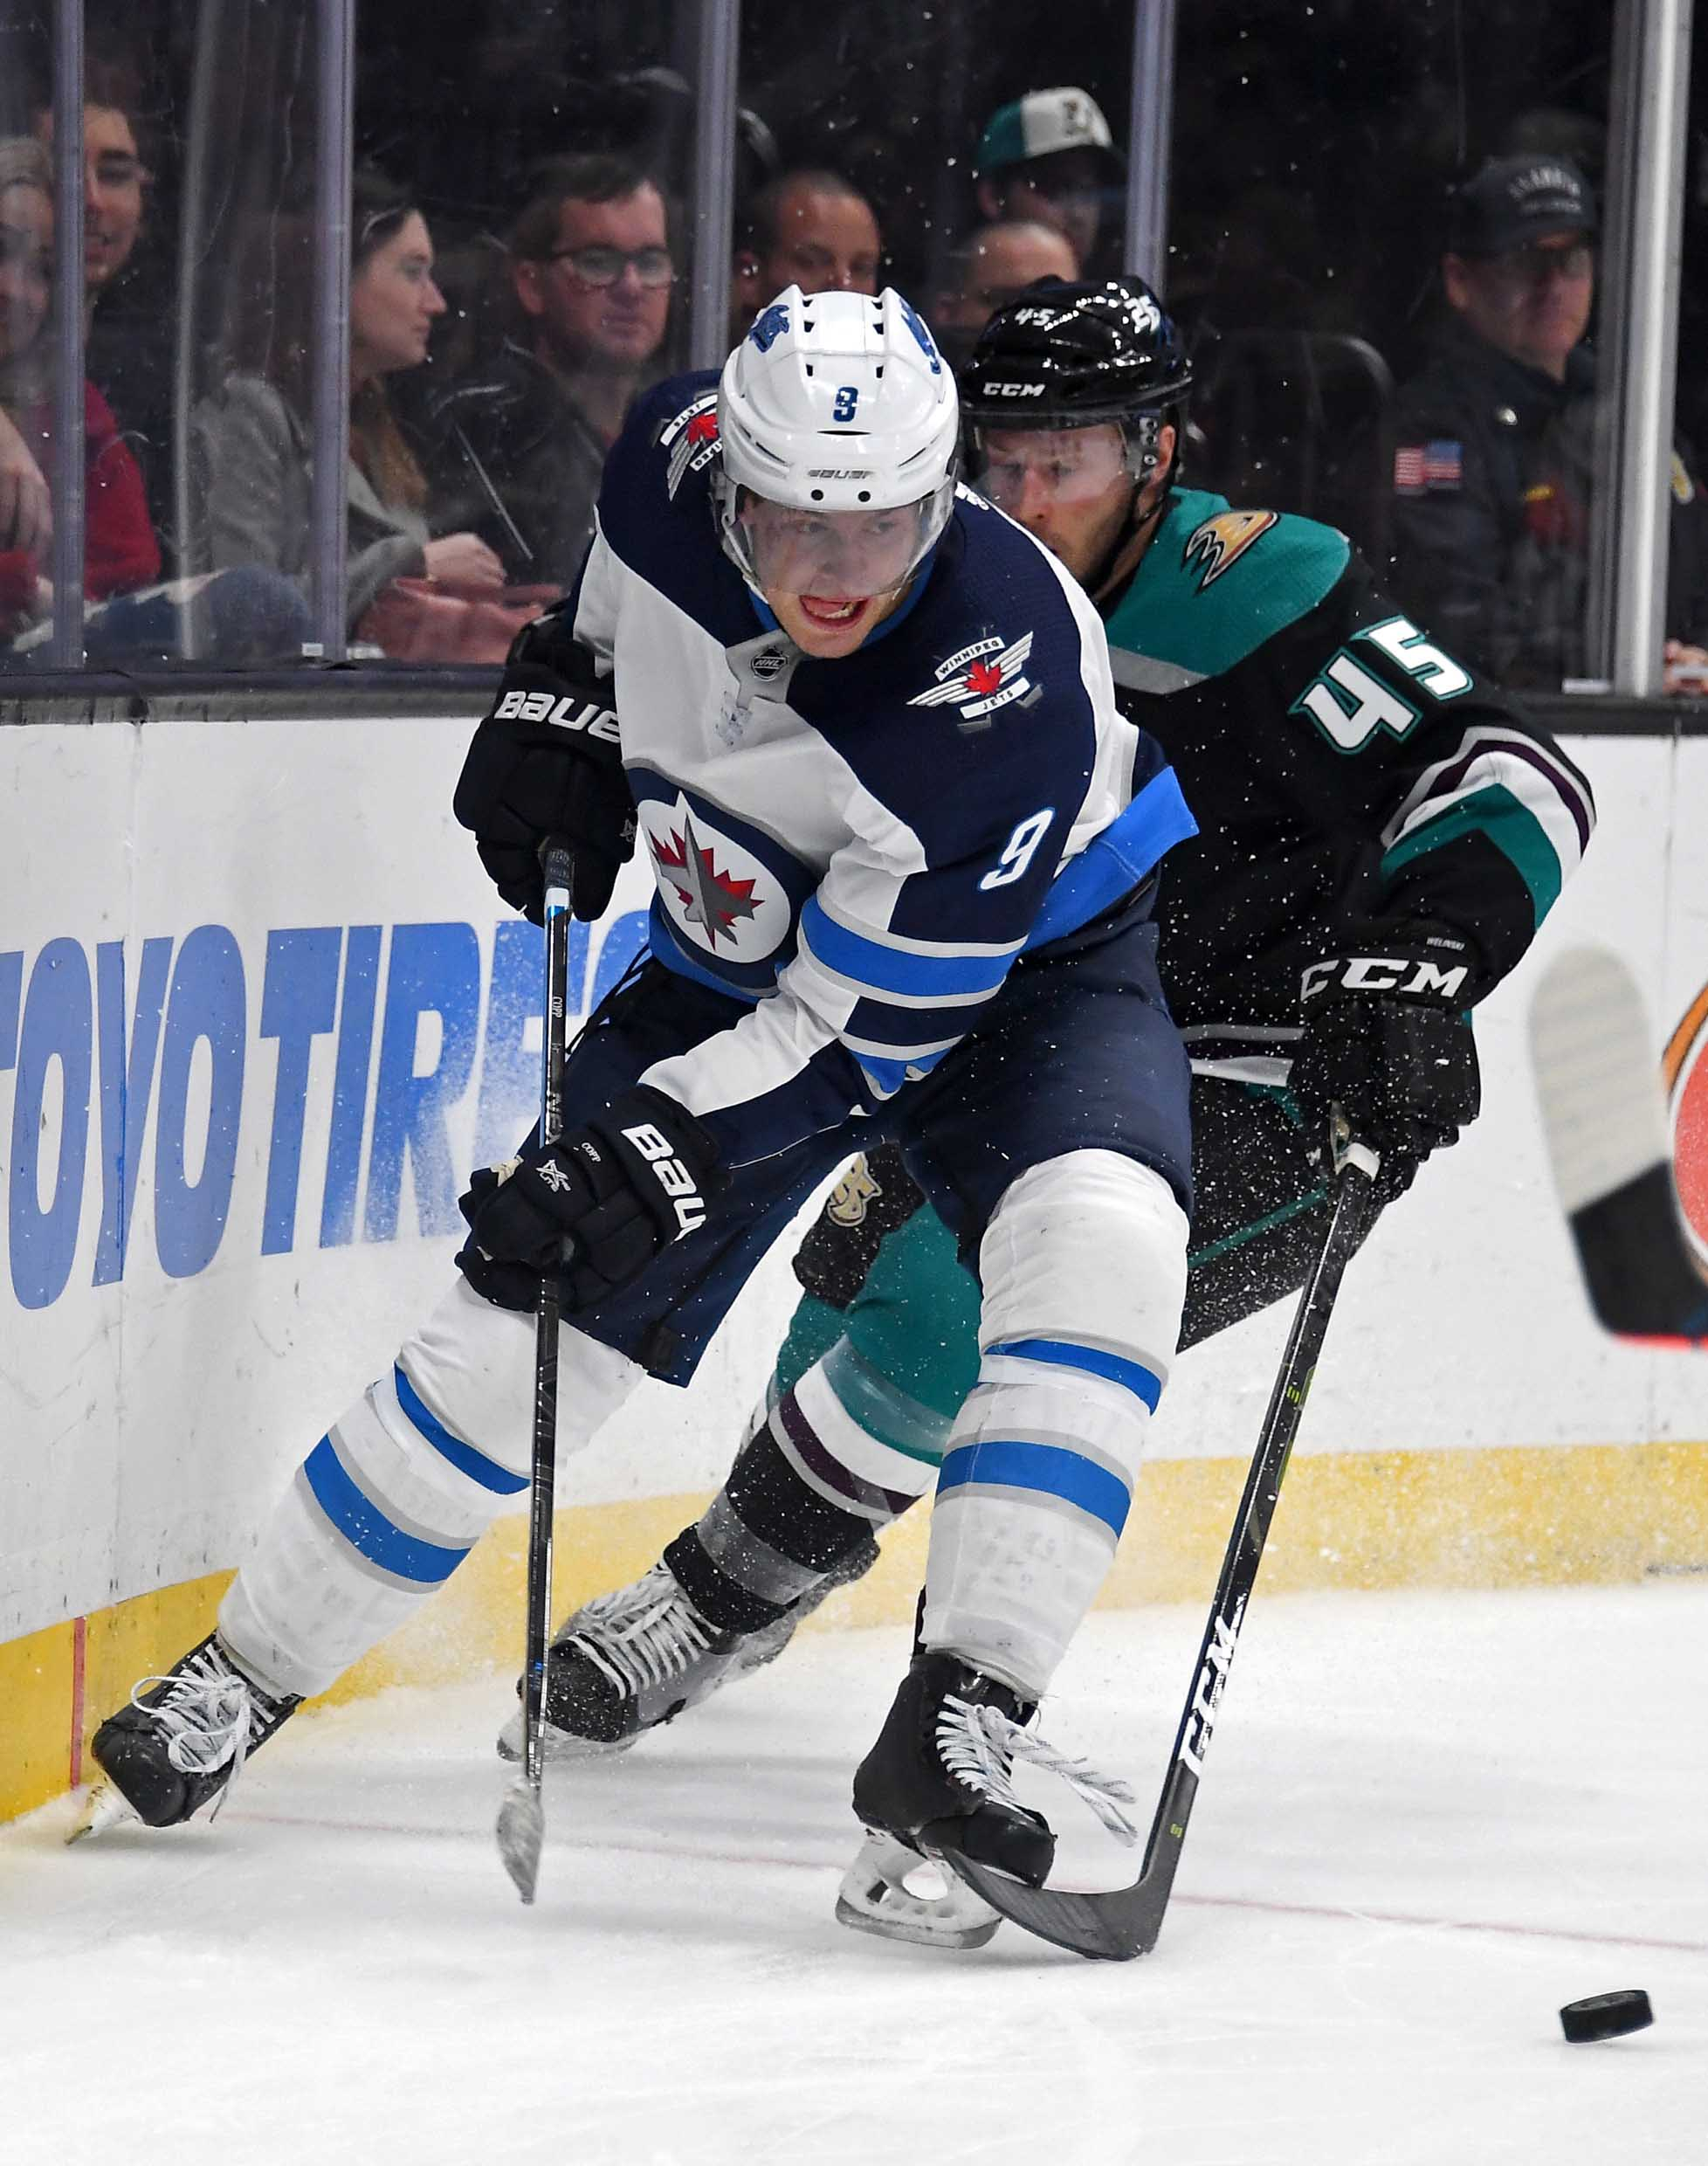 NHL: Winnipeg Jets at Anaheim Ducks